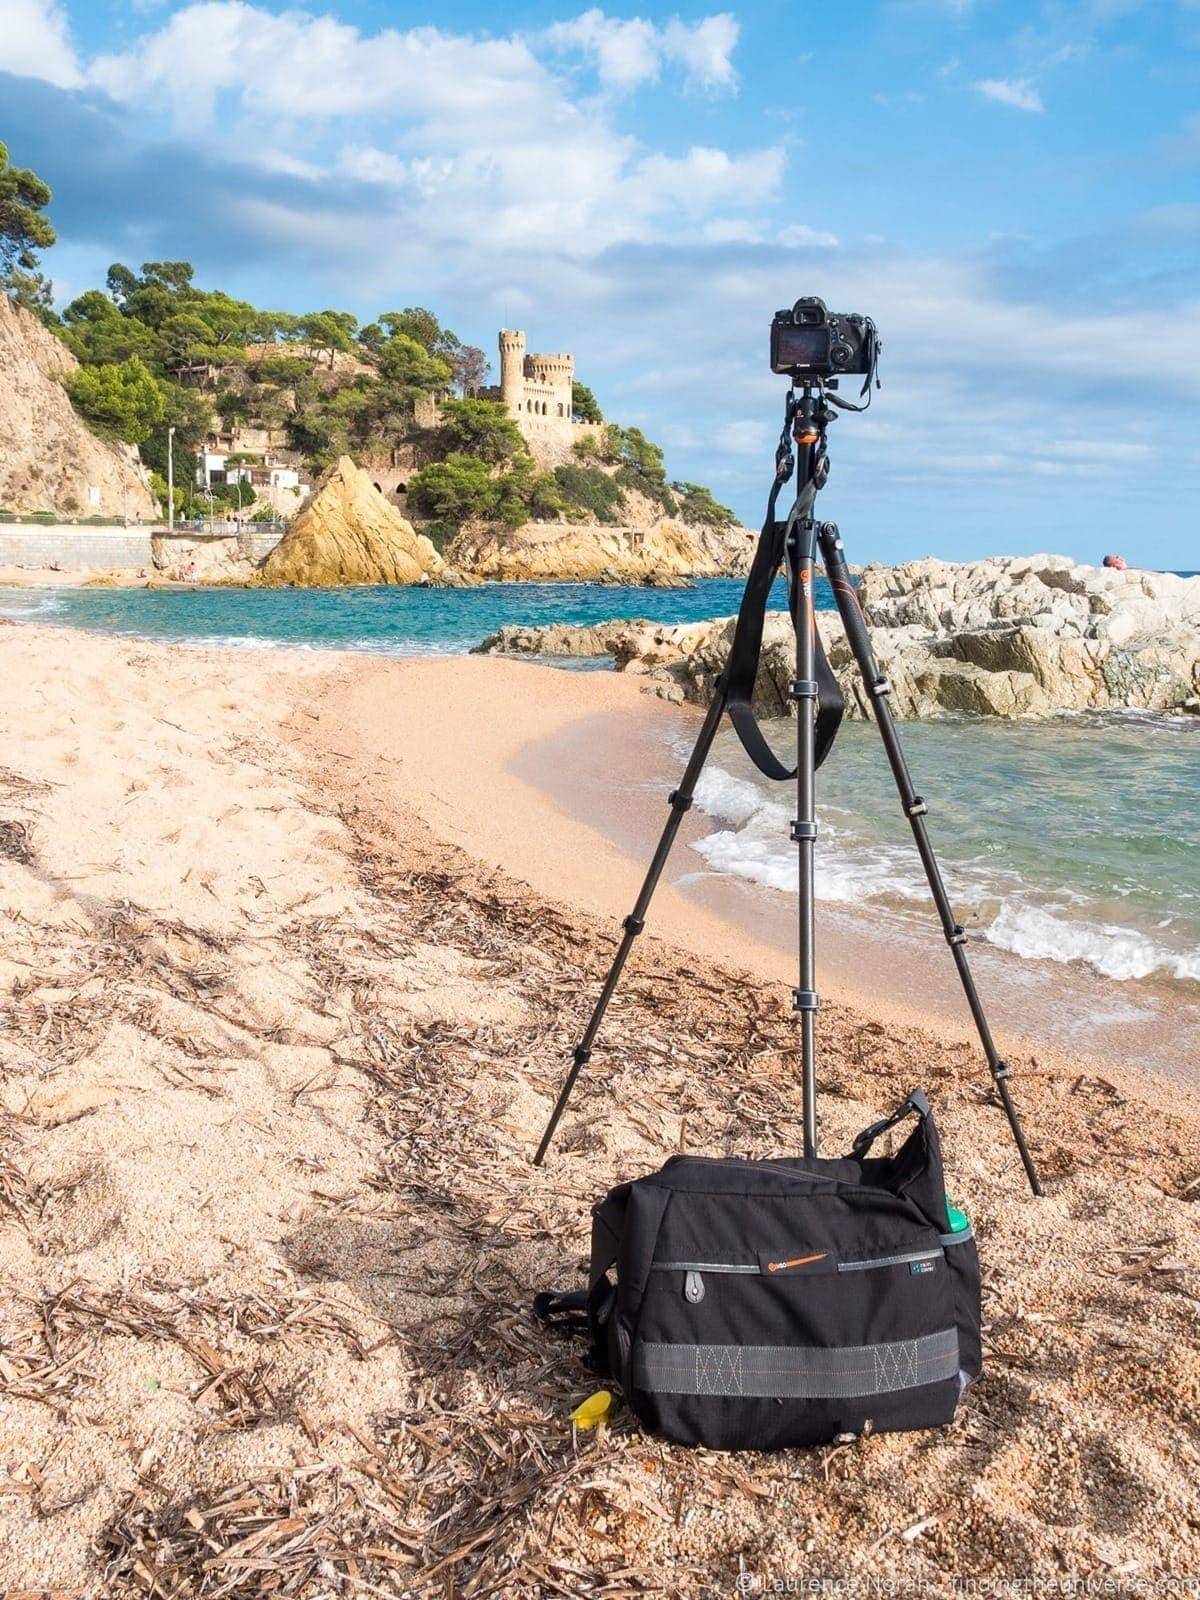 Vanguard tripod and bag on beach